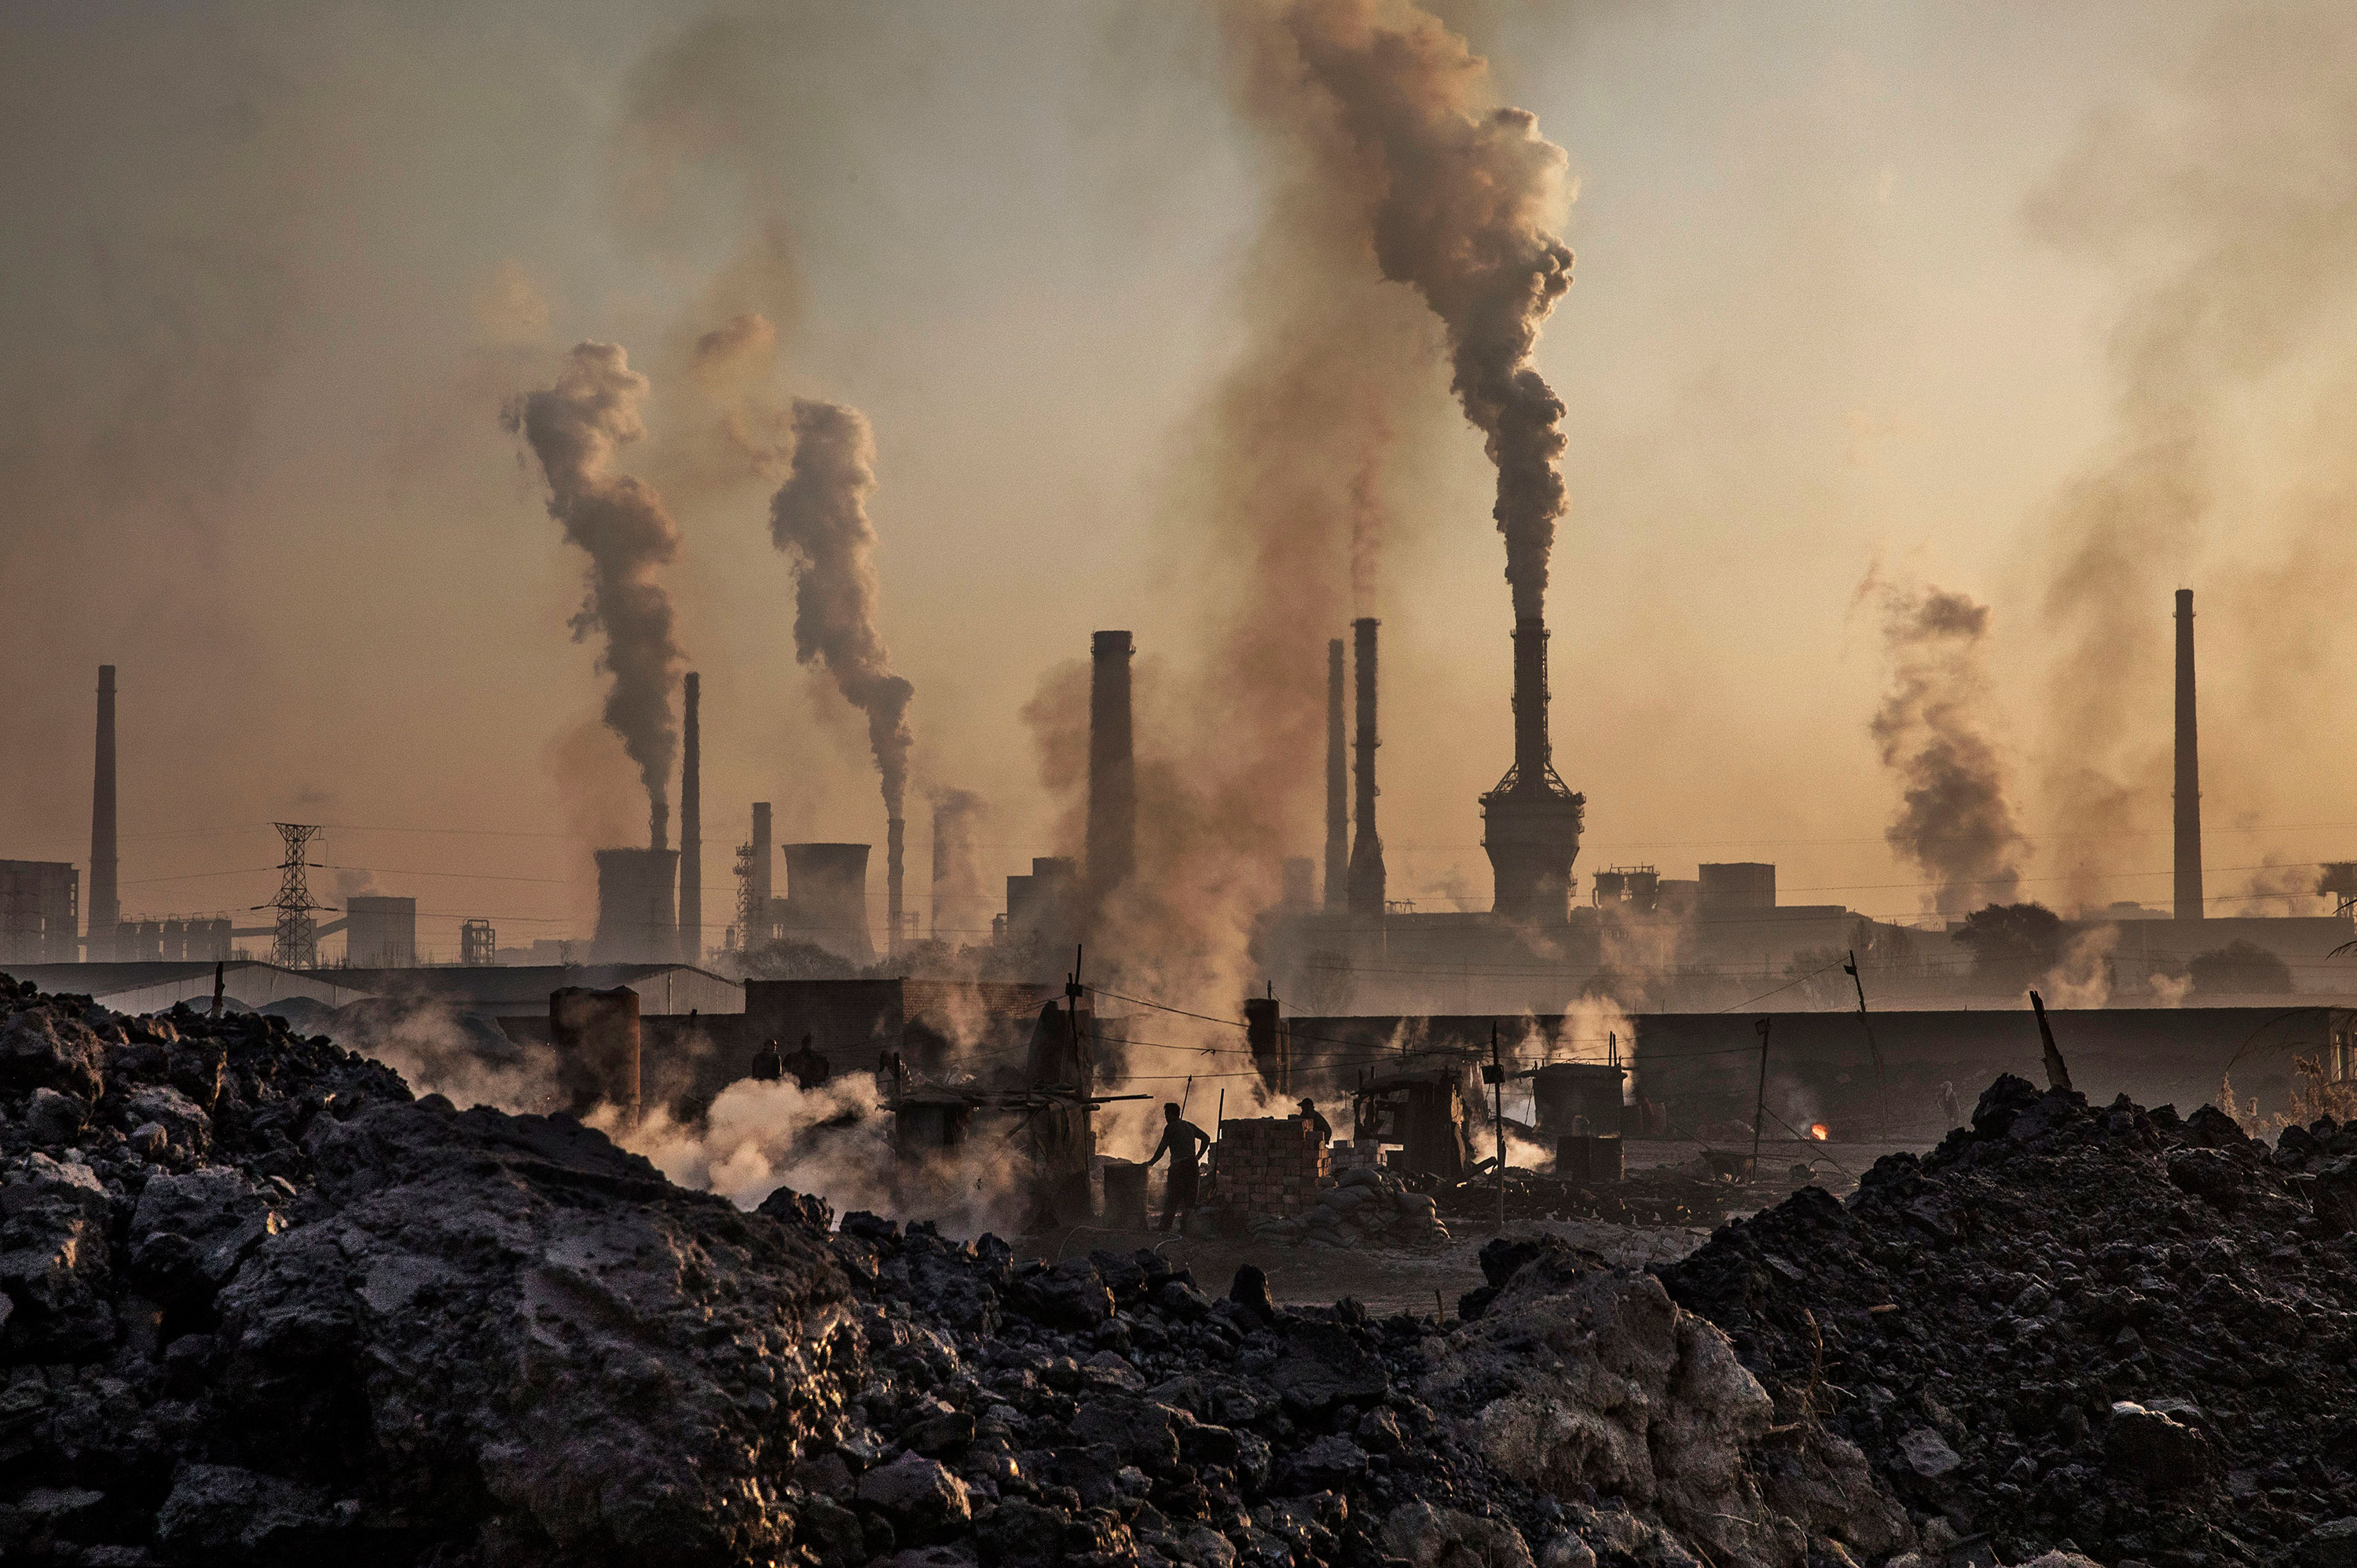 Smoke billows from a steel plant in Inner Mongolia, China on November 4, 2016.